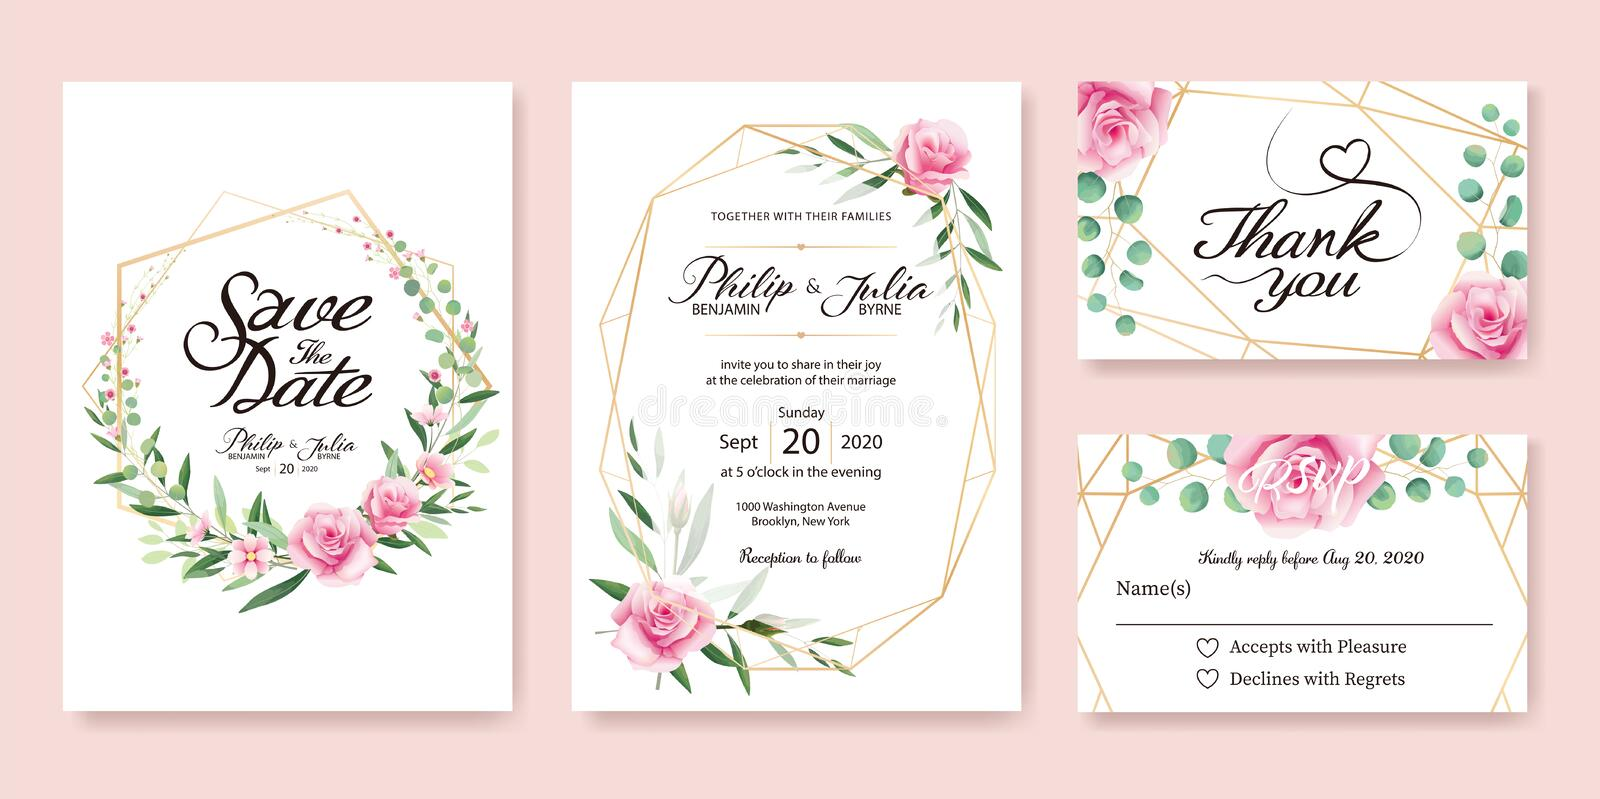 Wedding Invitation, save the date, thank you, rsvp card Design. vector illustration